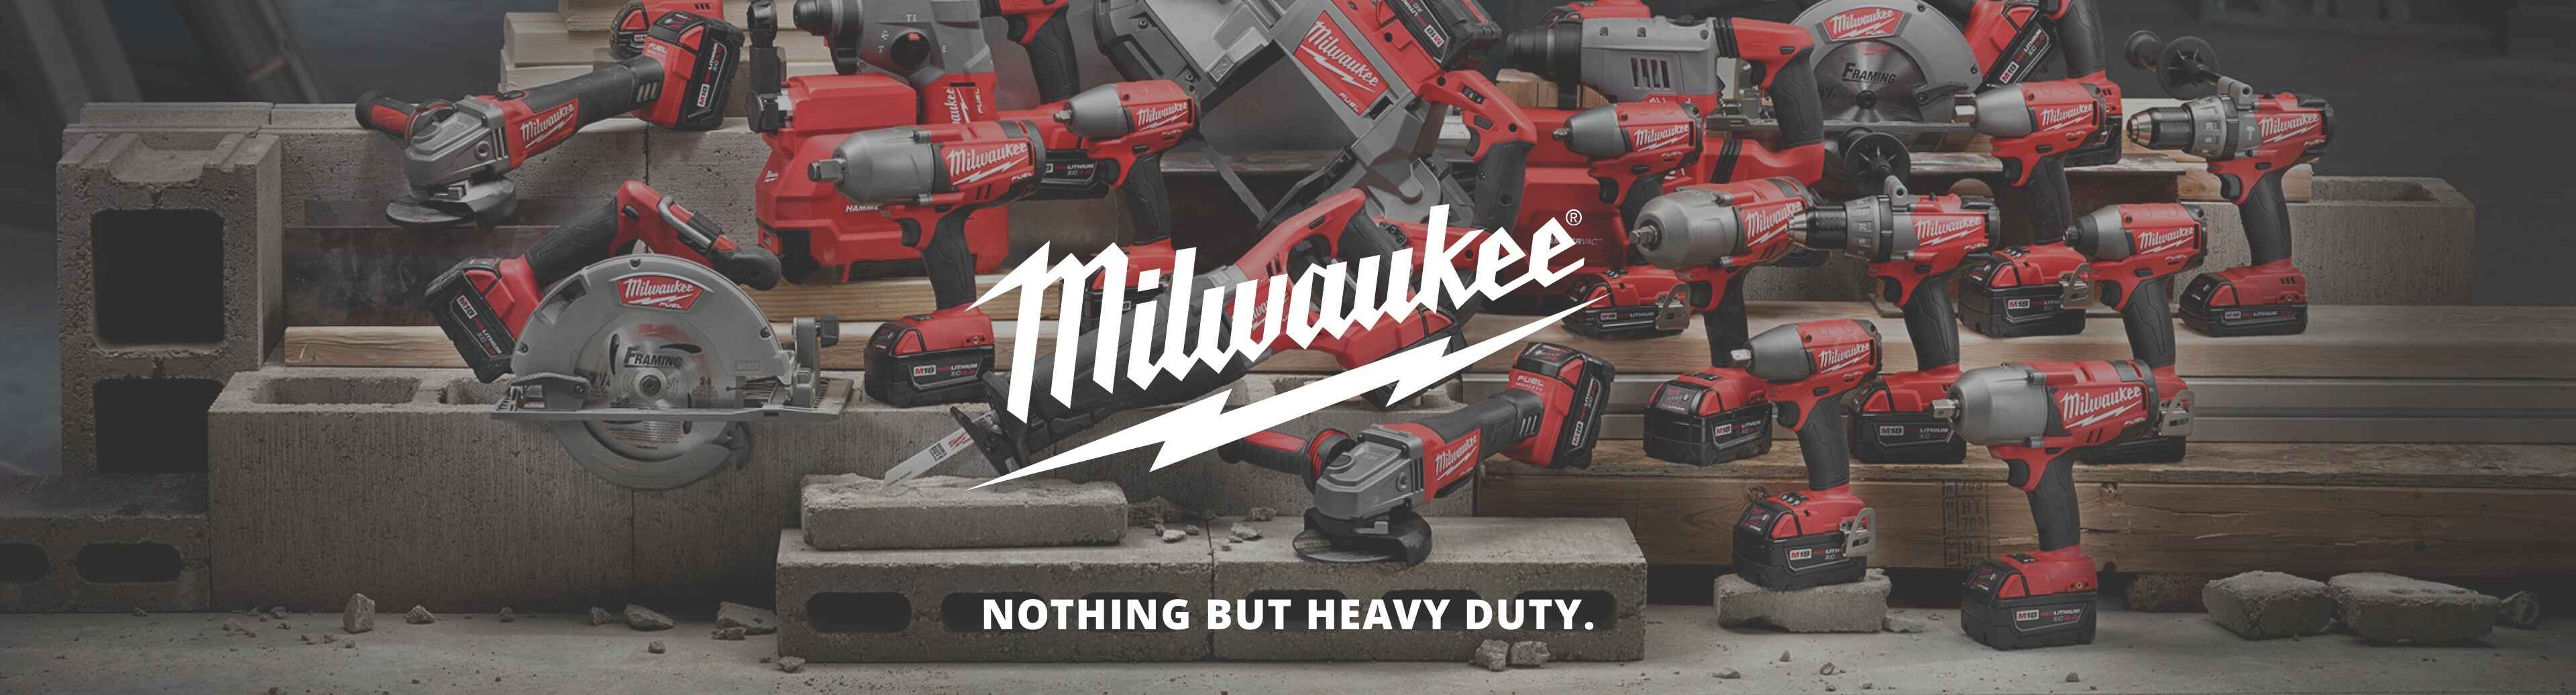 More about Milwaukee power tools at Gilchrist